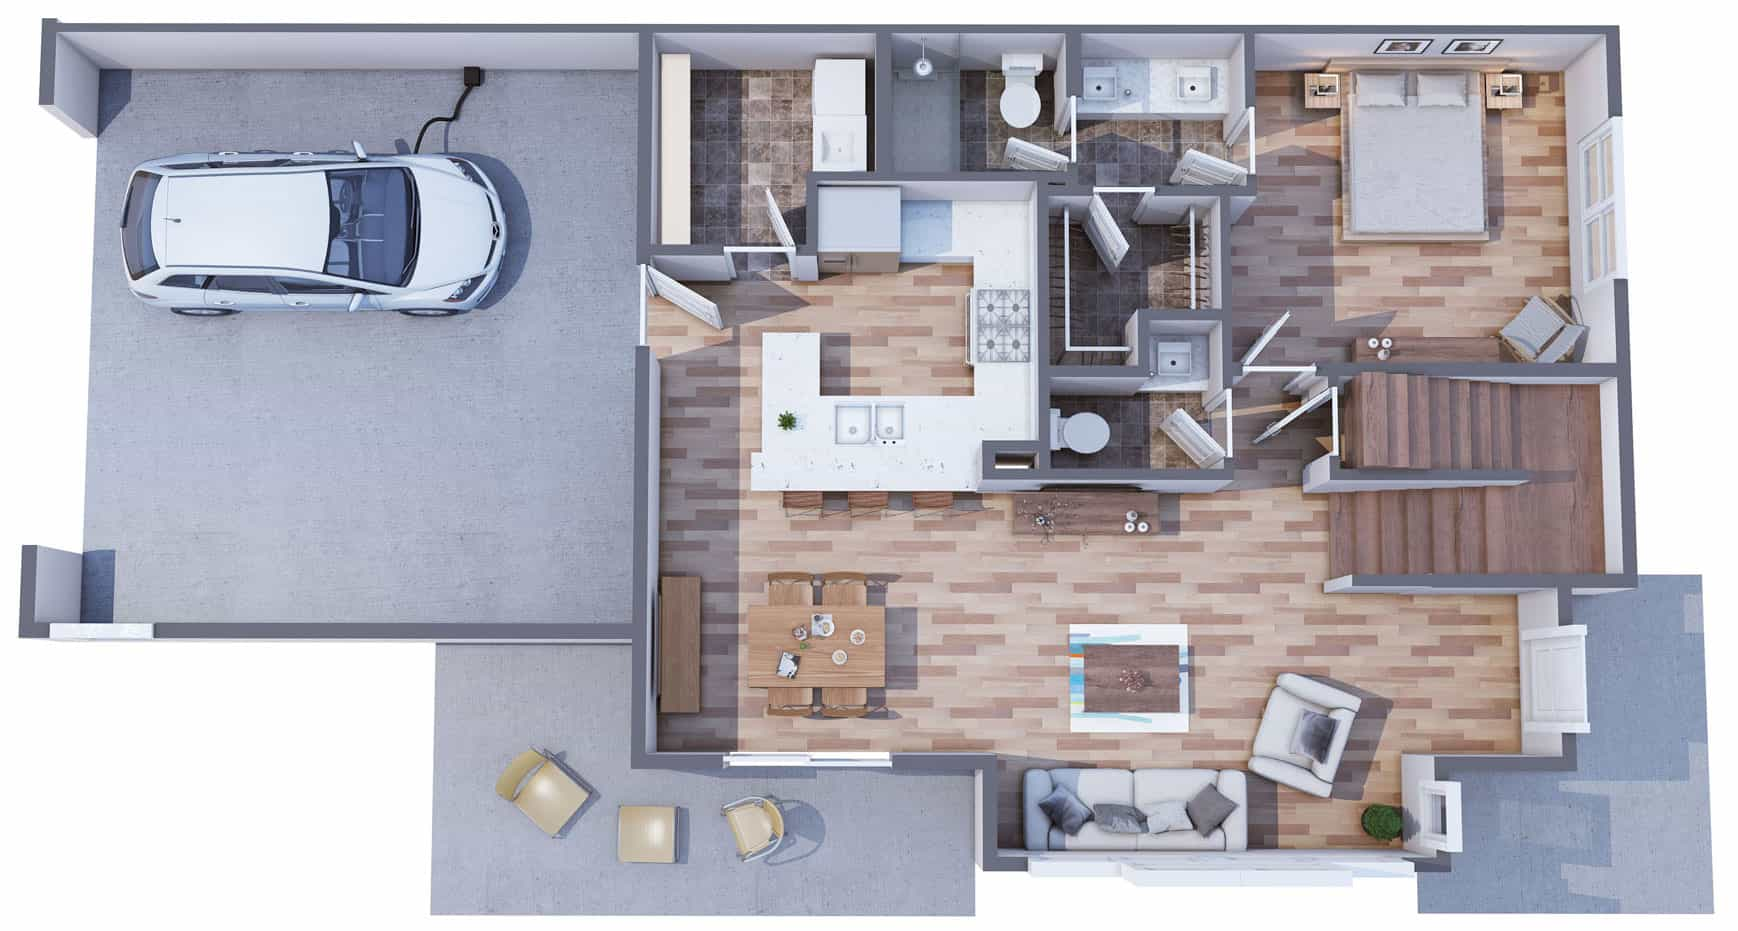 condos for sale in fort collins co